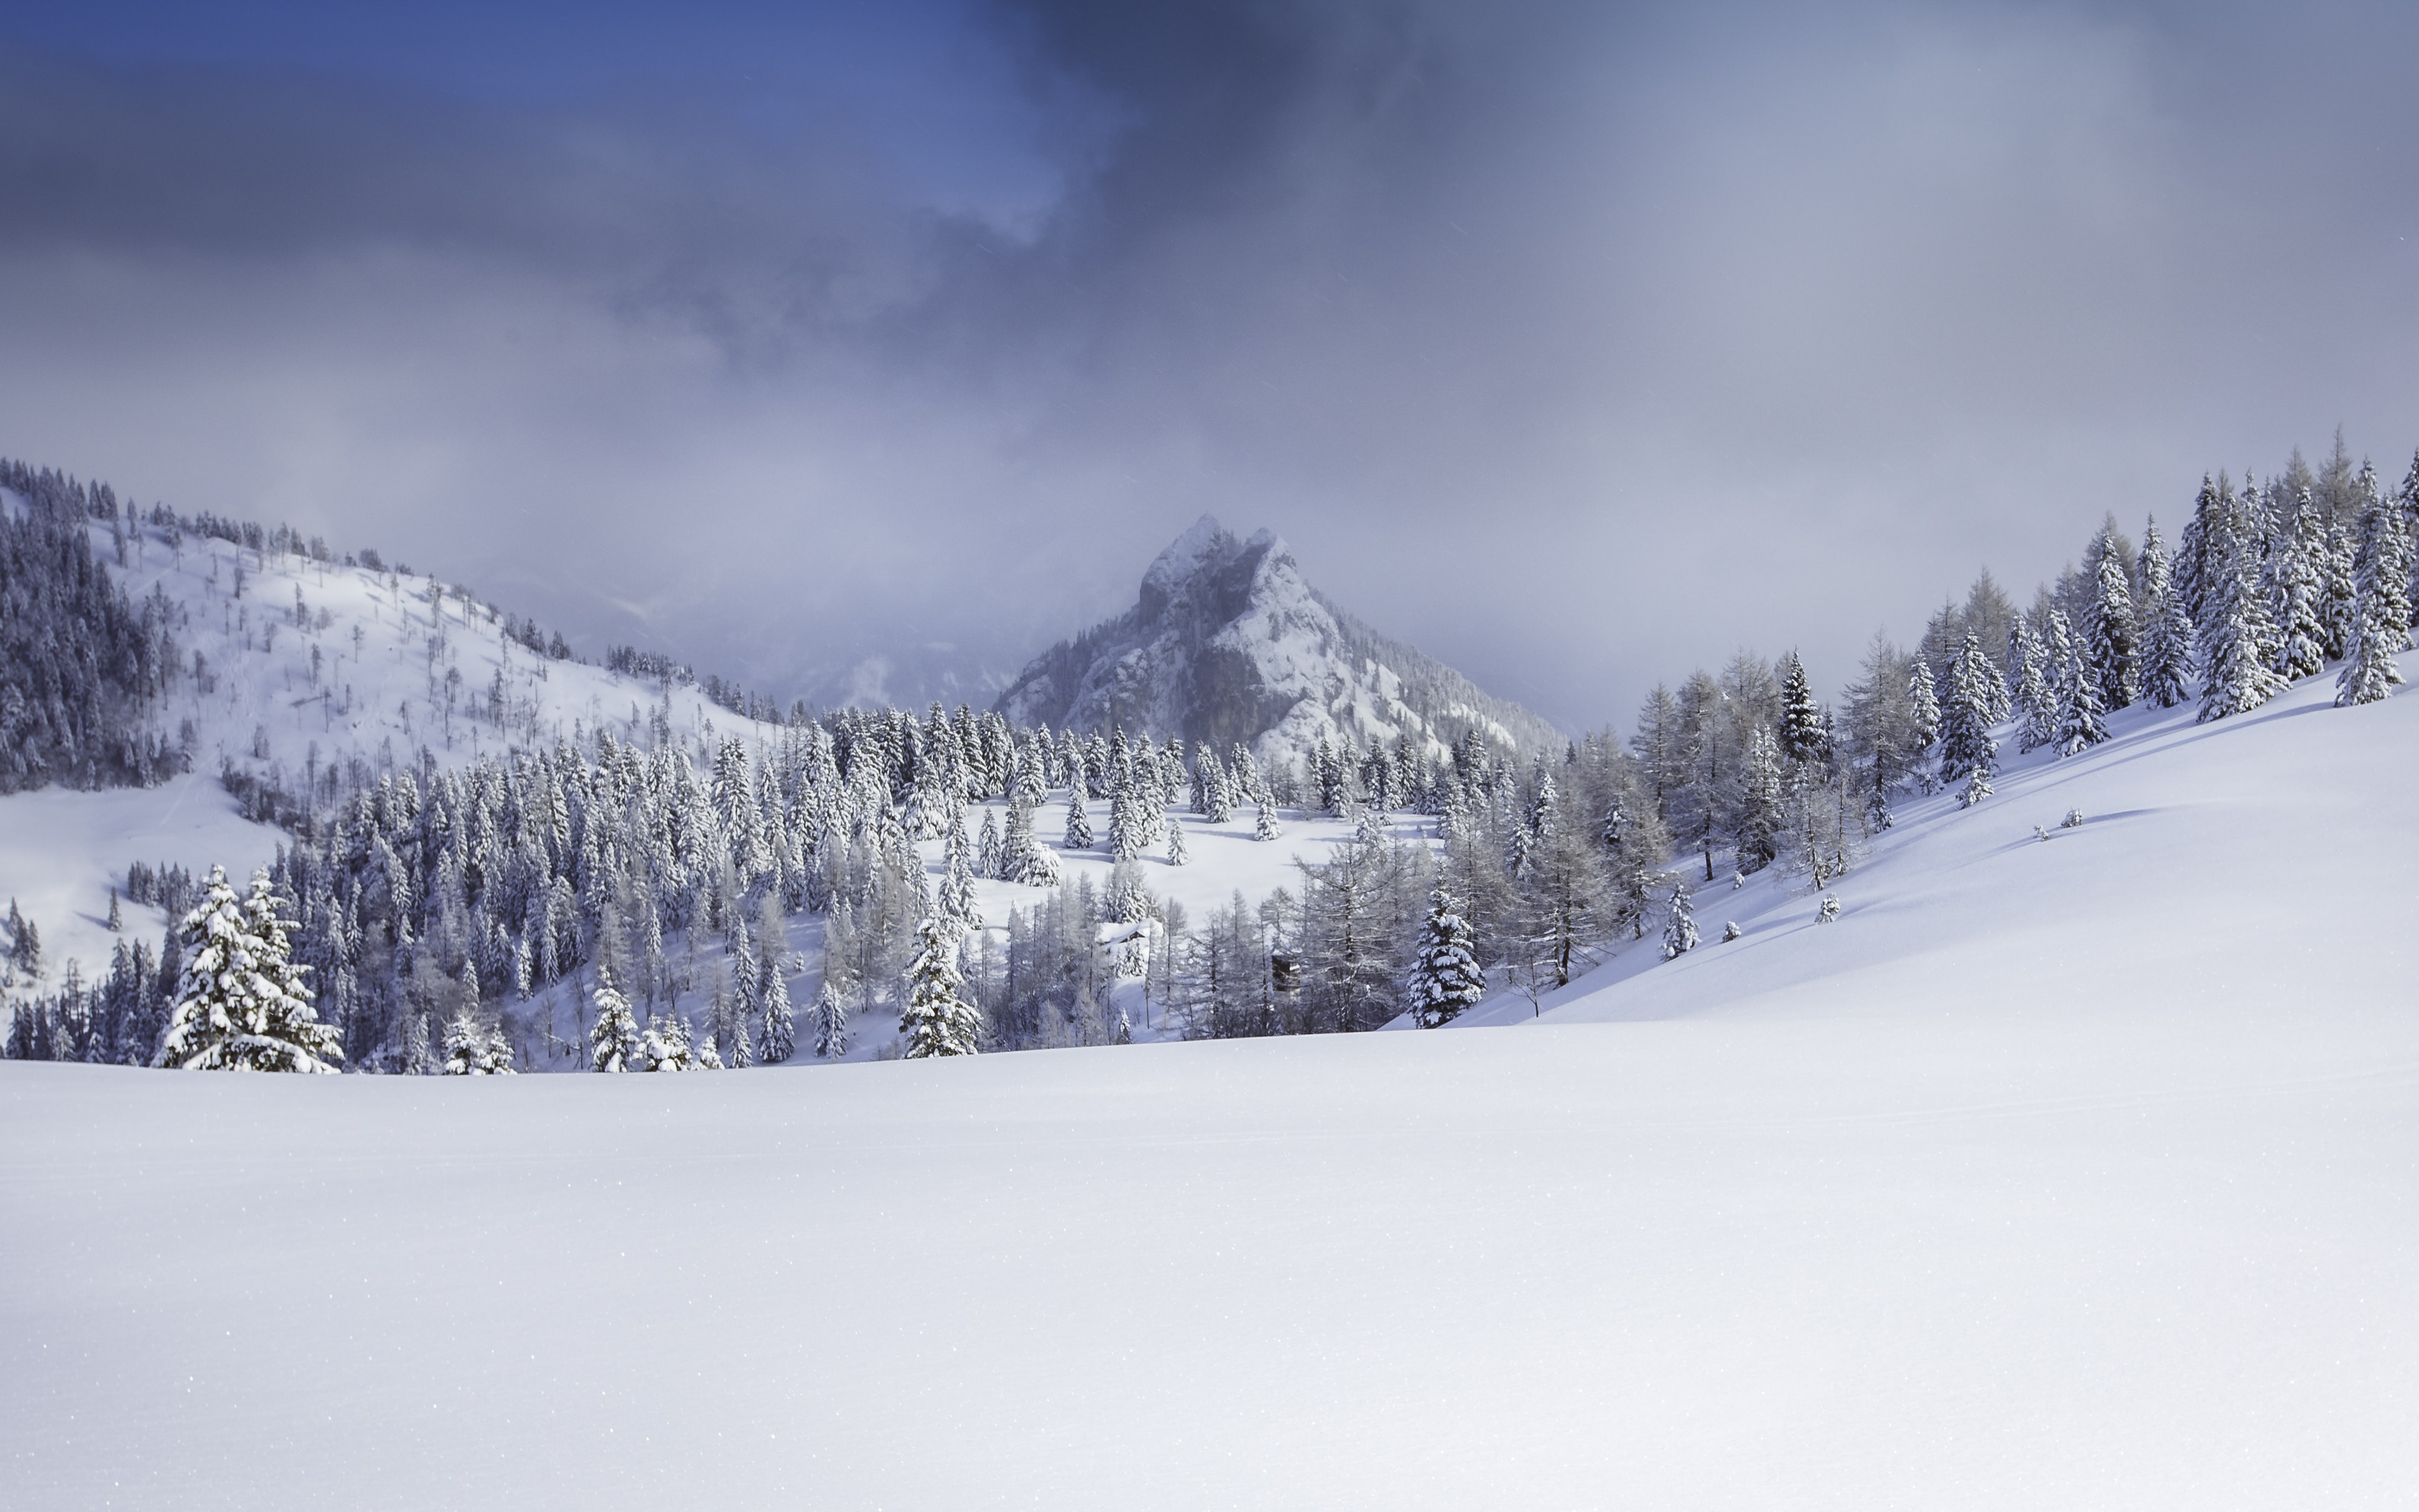 A background consisting of a foggy sky at the winter alps in Postalm